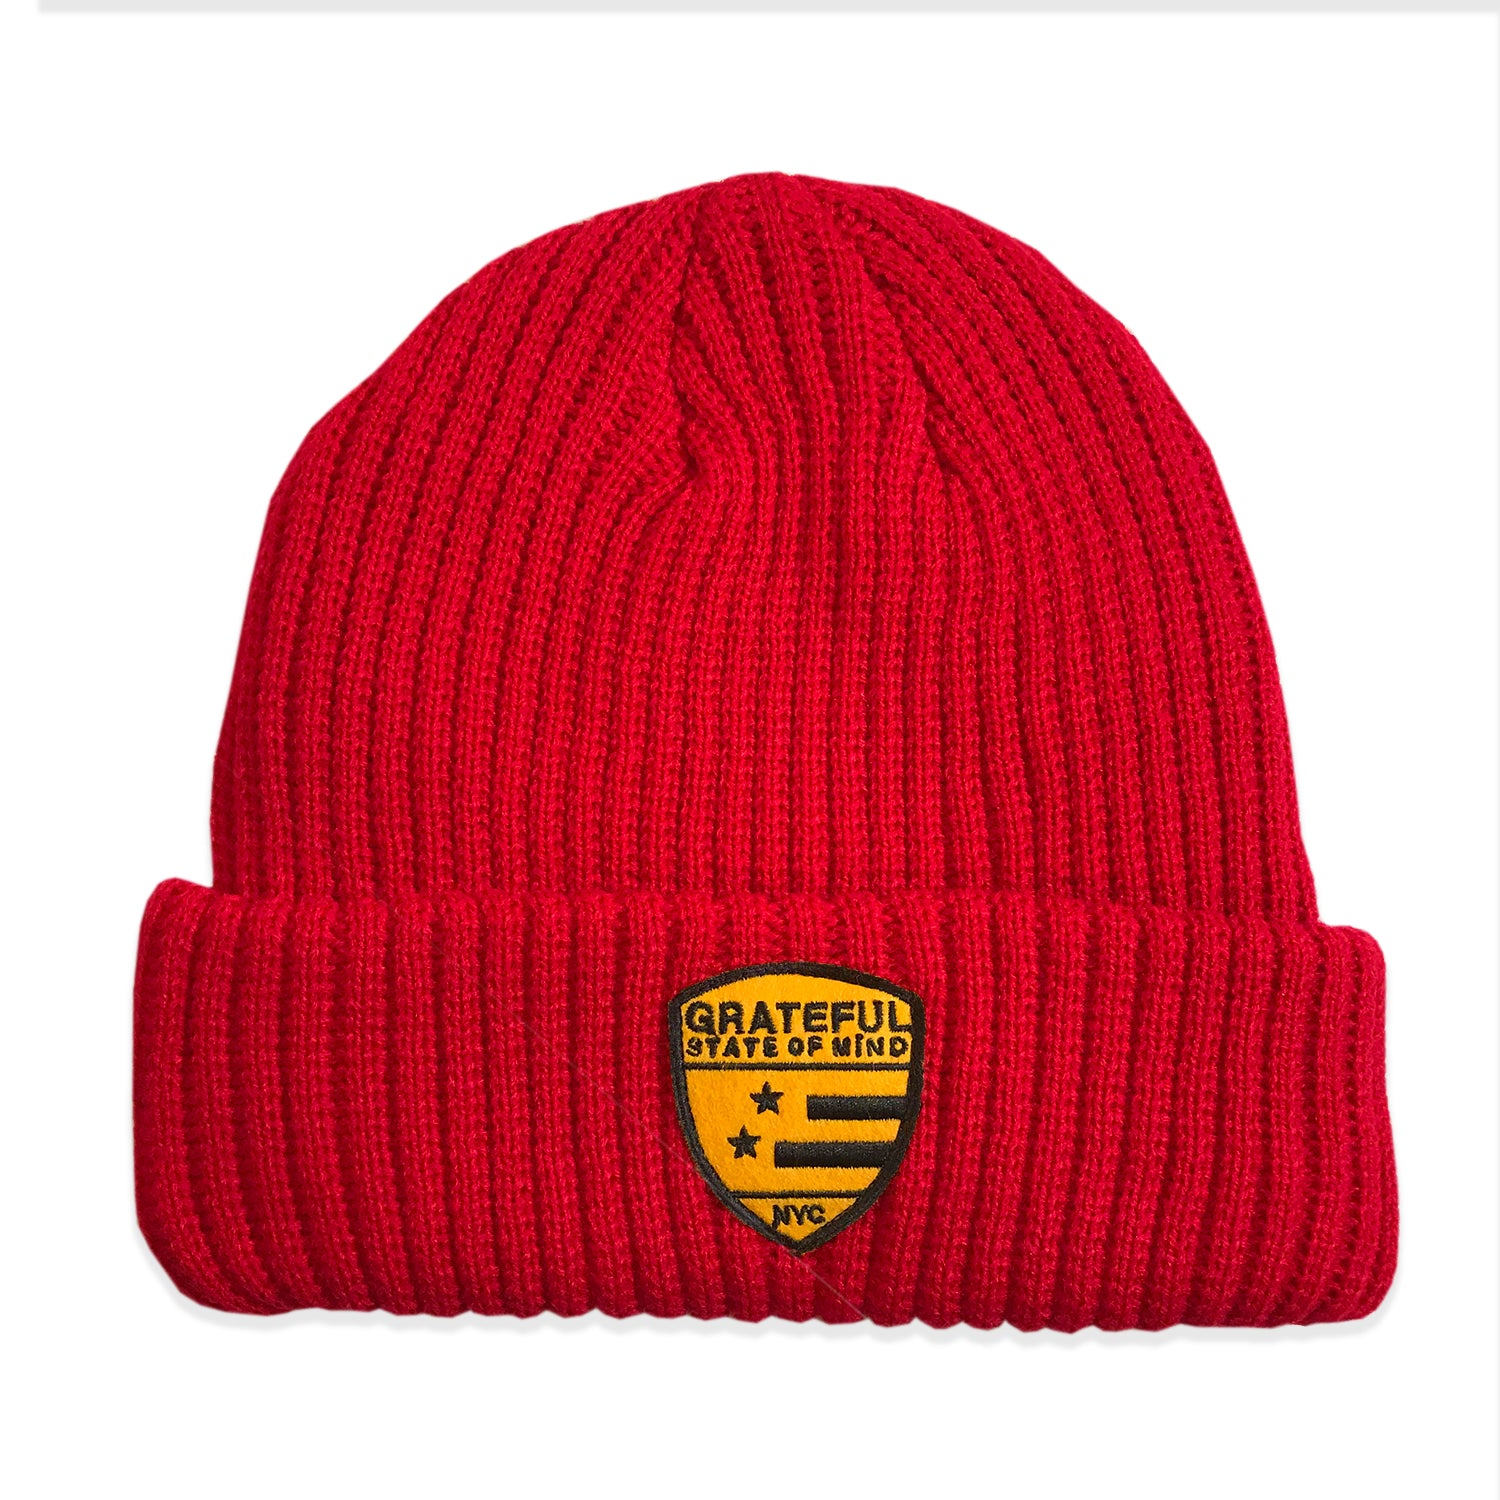 State of Mind Beanie 4-Pack